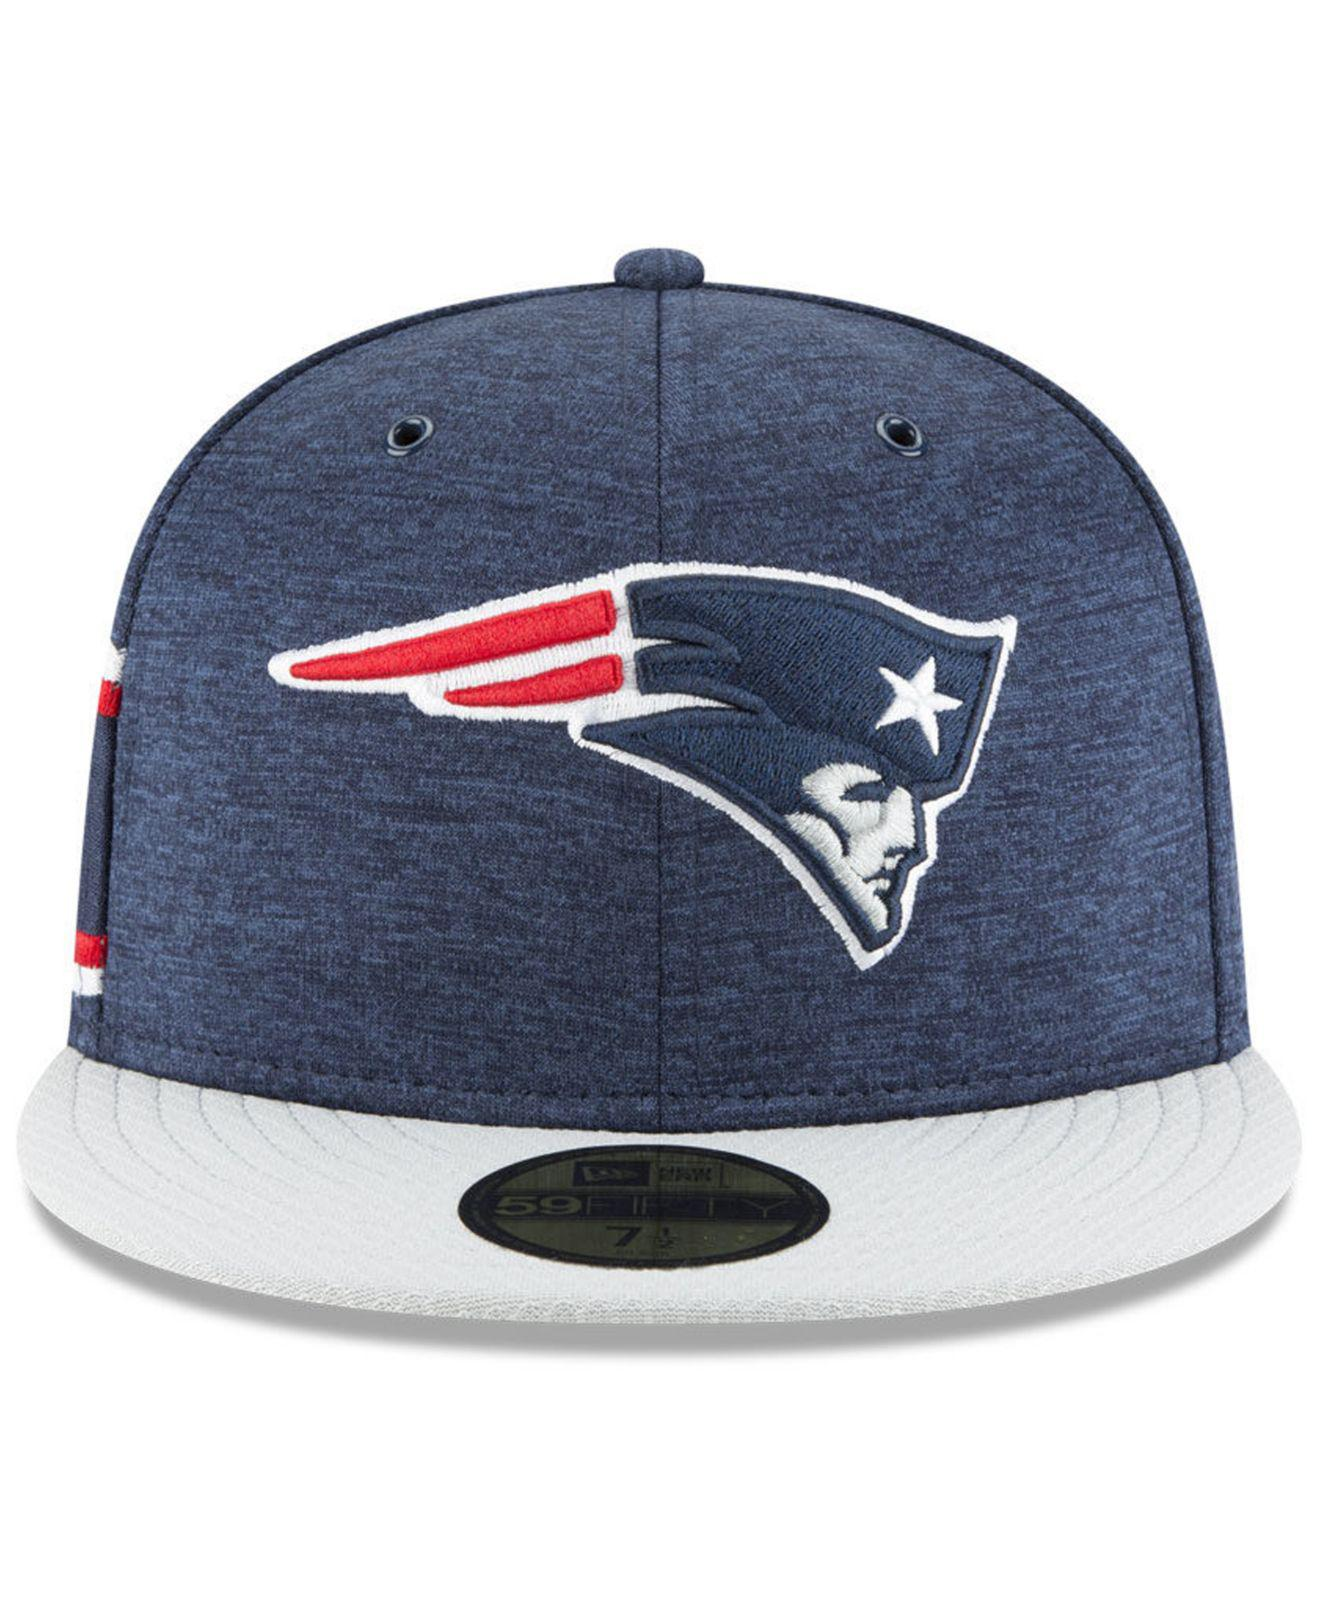 Lyst - KTZ New England Patriots On Field Sideline Home 59fifty Fitted Cap  in Blue for Men 48c27e47e